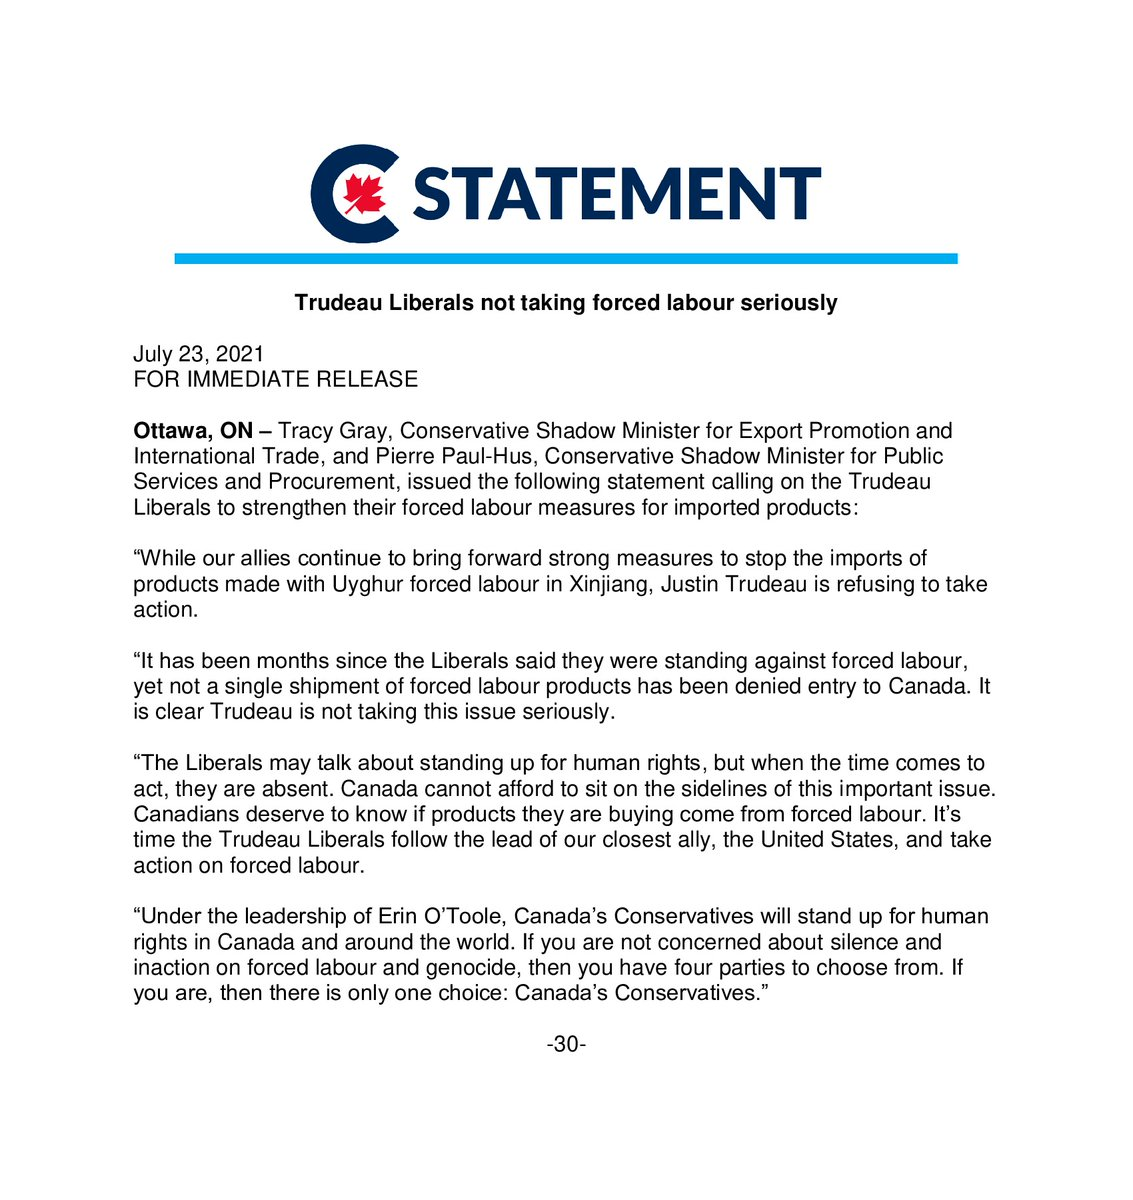 While our allies continue to bring forward strong measures to stop the imports of products made with Uyghur forced labour in Xinjiang, Justin Trudeau is refusing to take action. https://t.co/IZq9MOj1SG